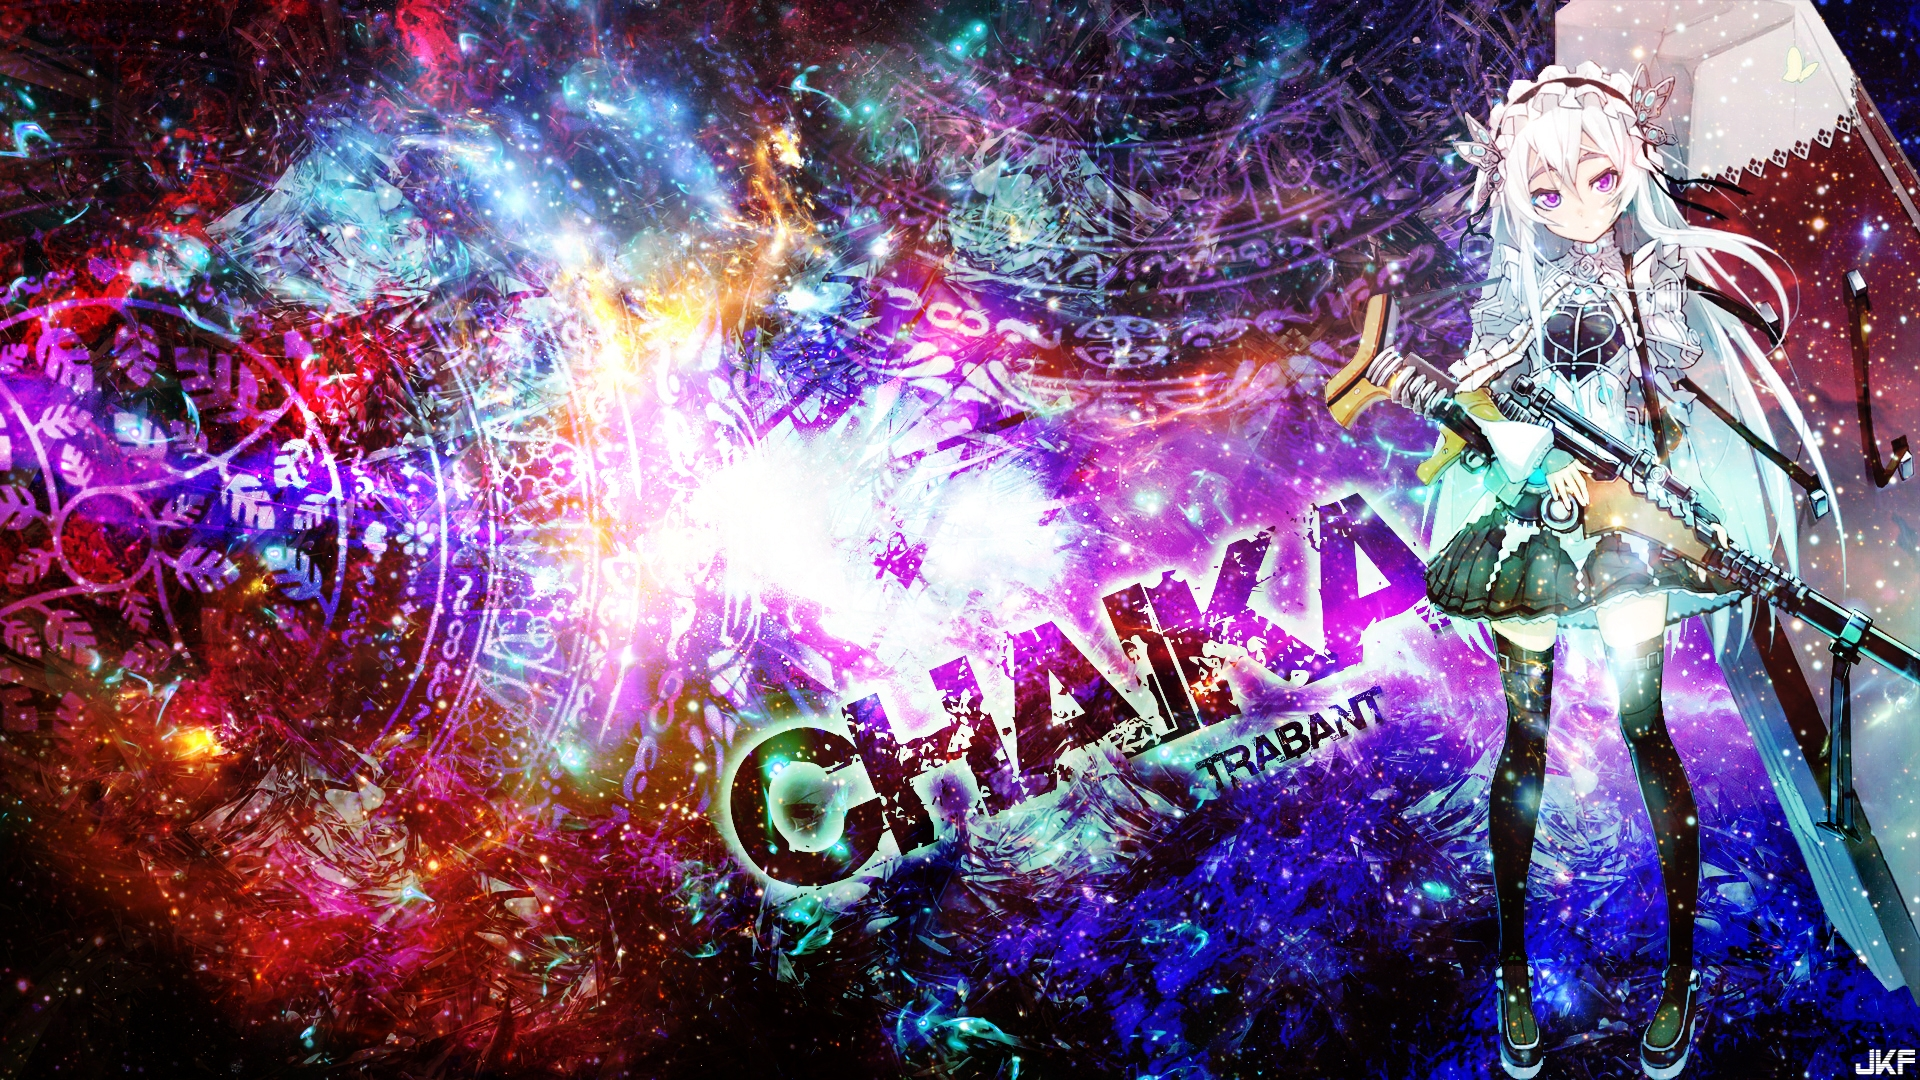 chaika_wallpaper_by_dinocojv-d8ircgb.jpg